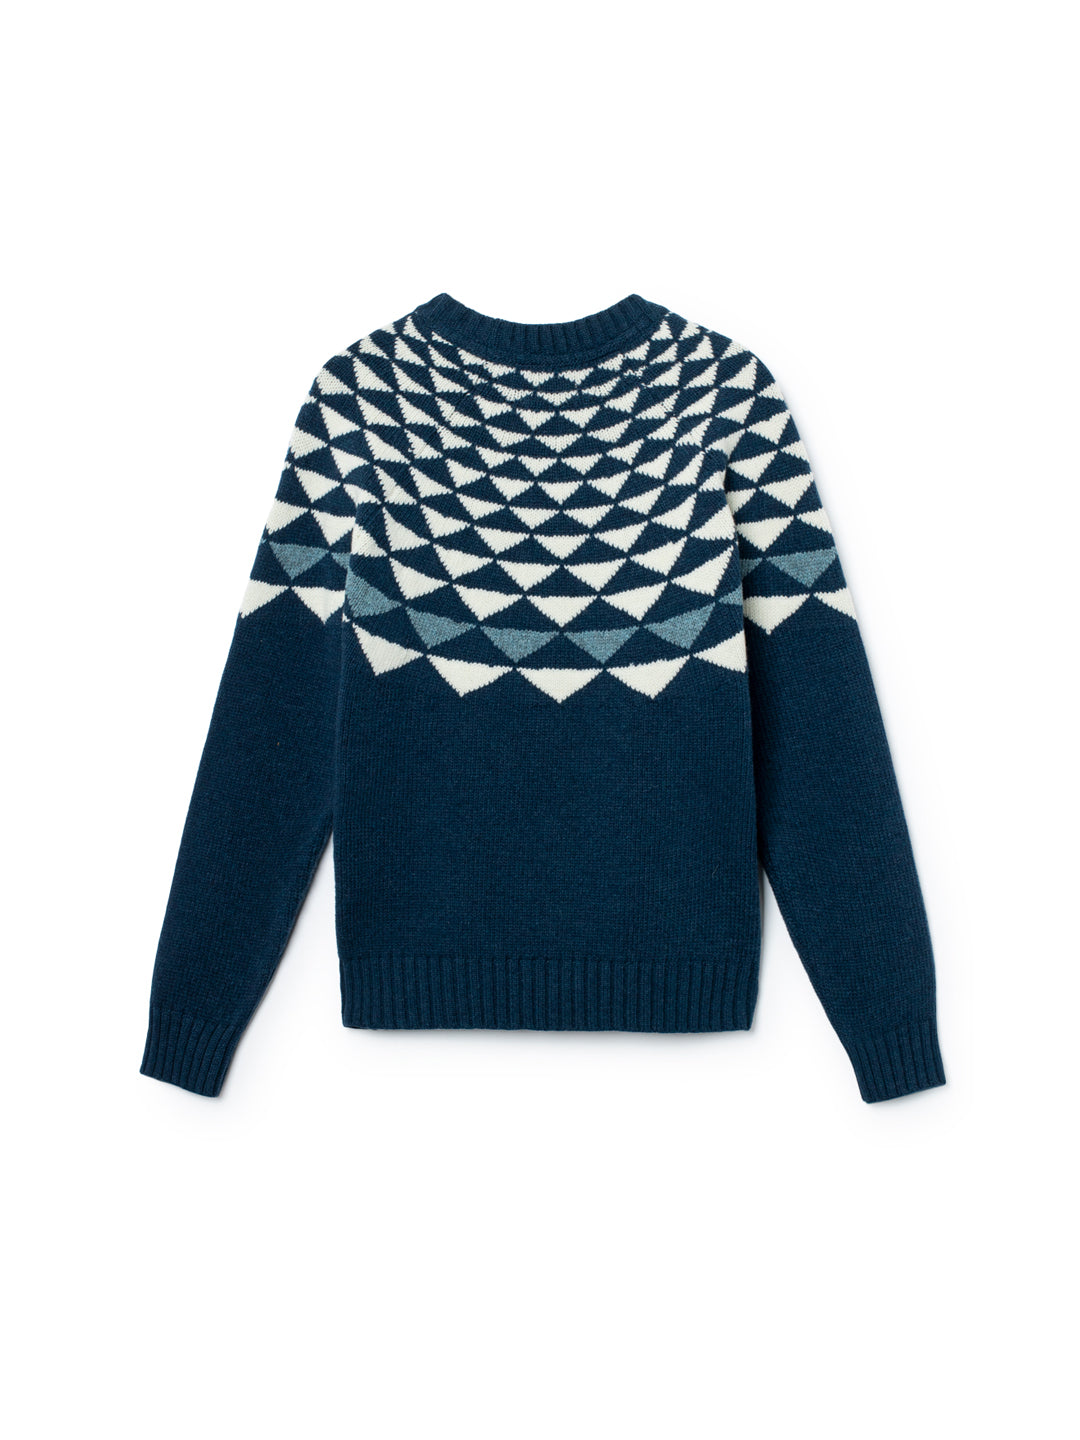 TWOTHIRDS Womens Knit: Mare Wool - Blue back